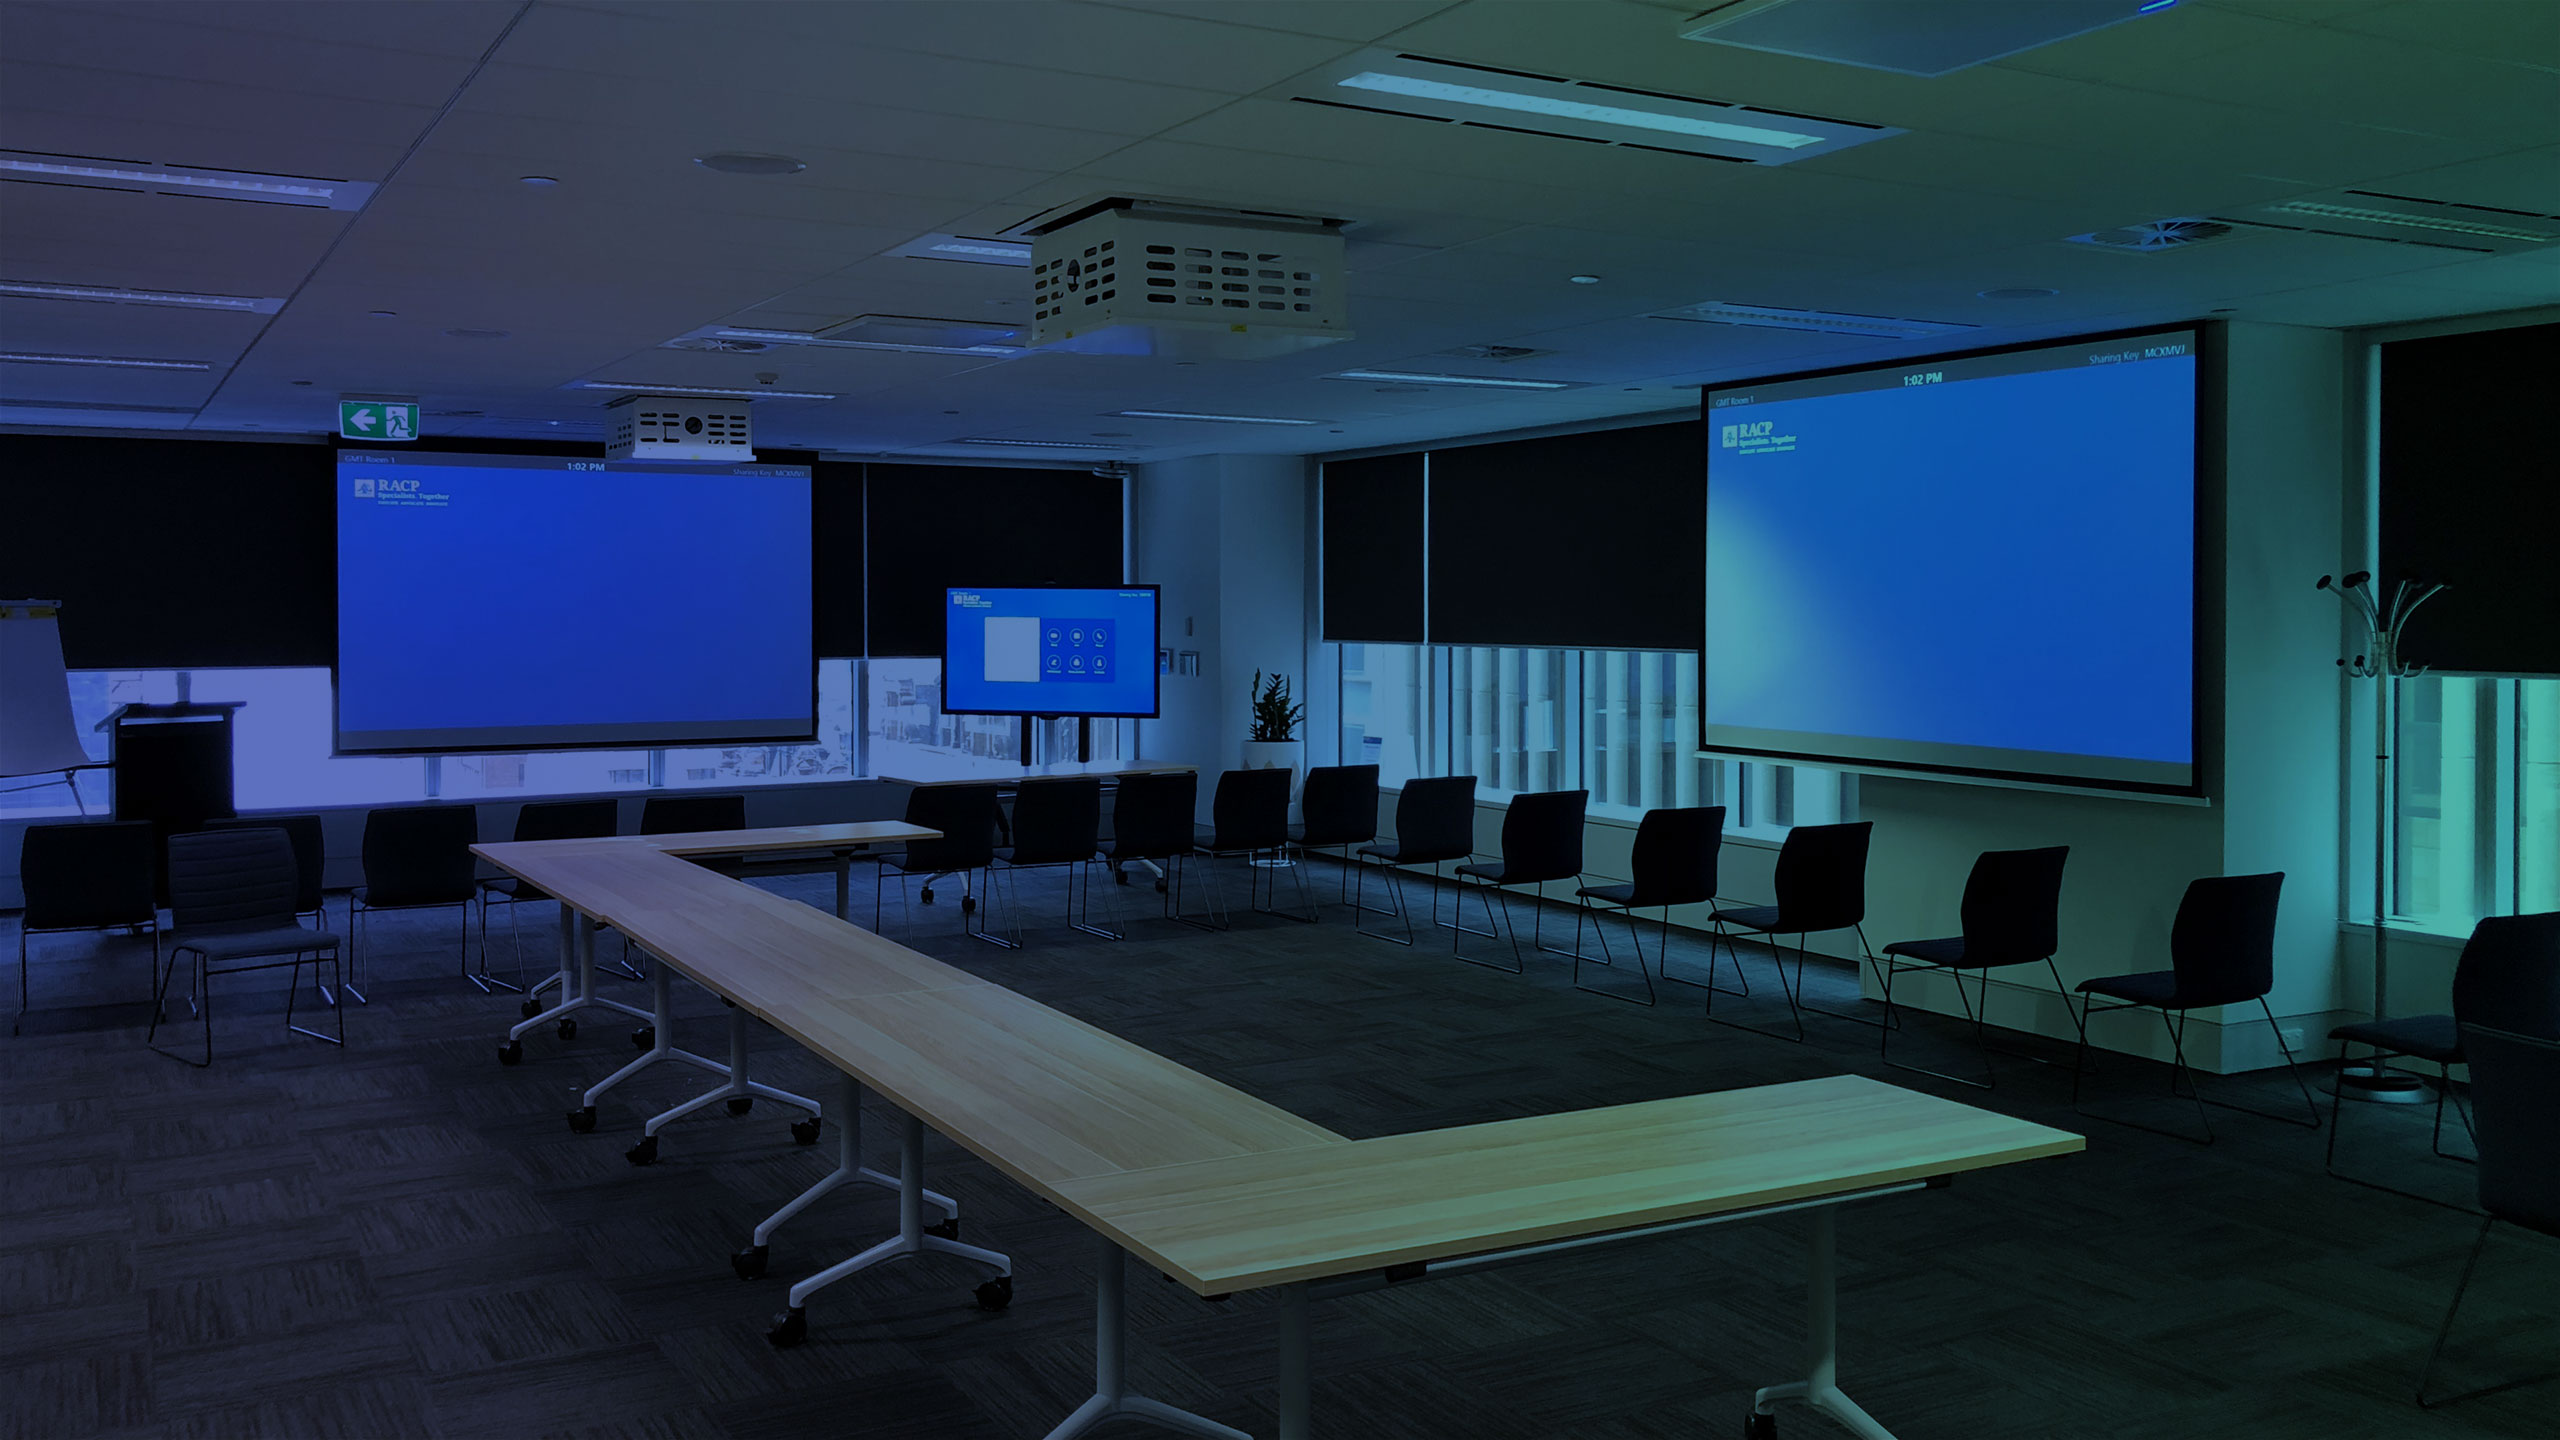 large conference room with projector screens